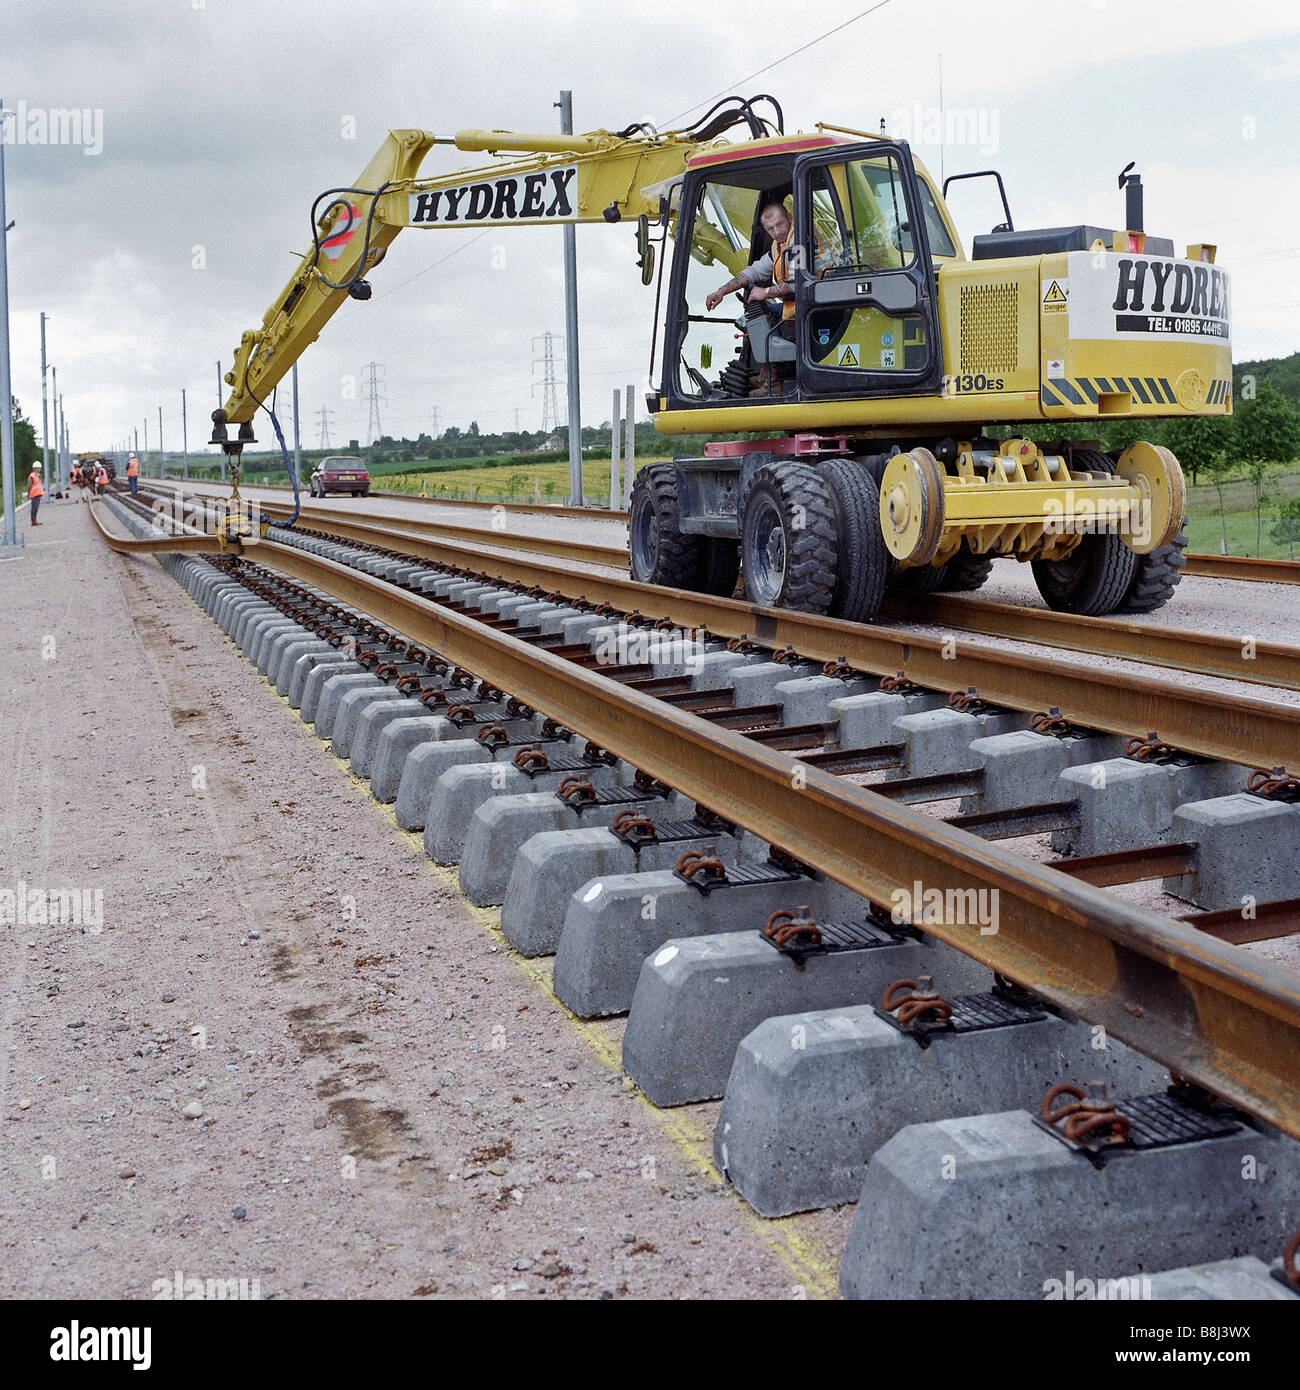 Welded Rail Stock Photos & Welded Rail Stock Images - Alamy